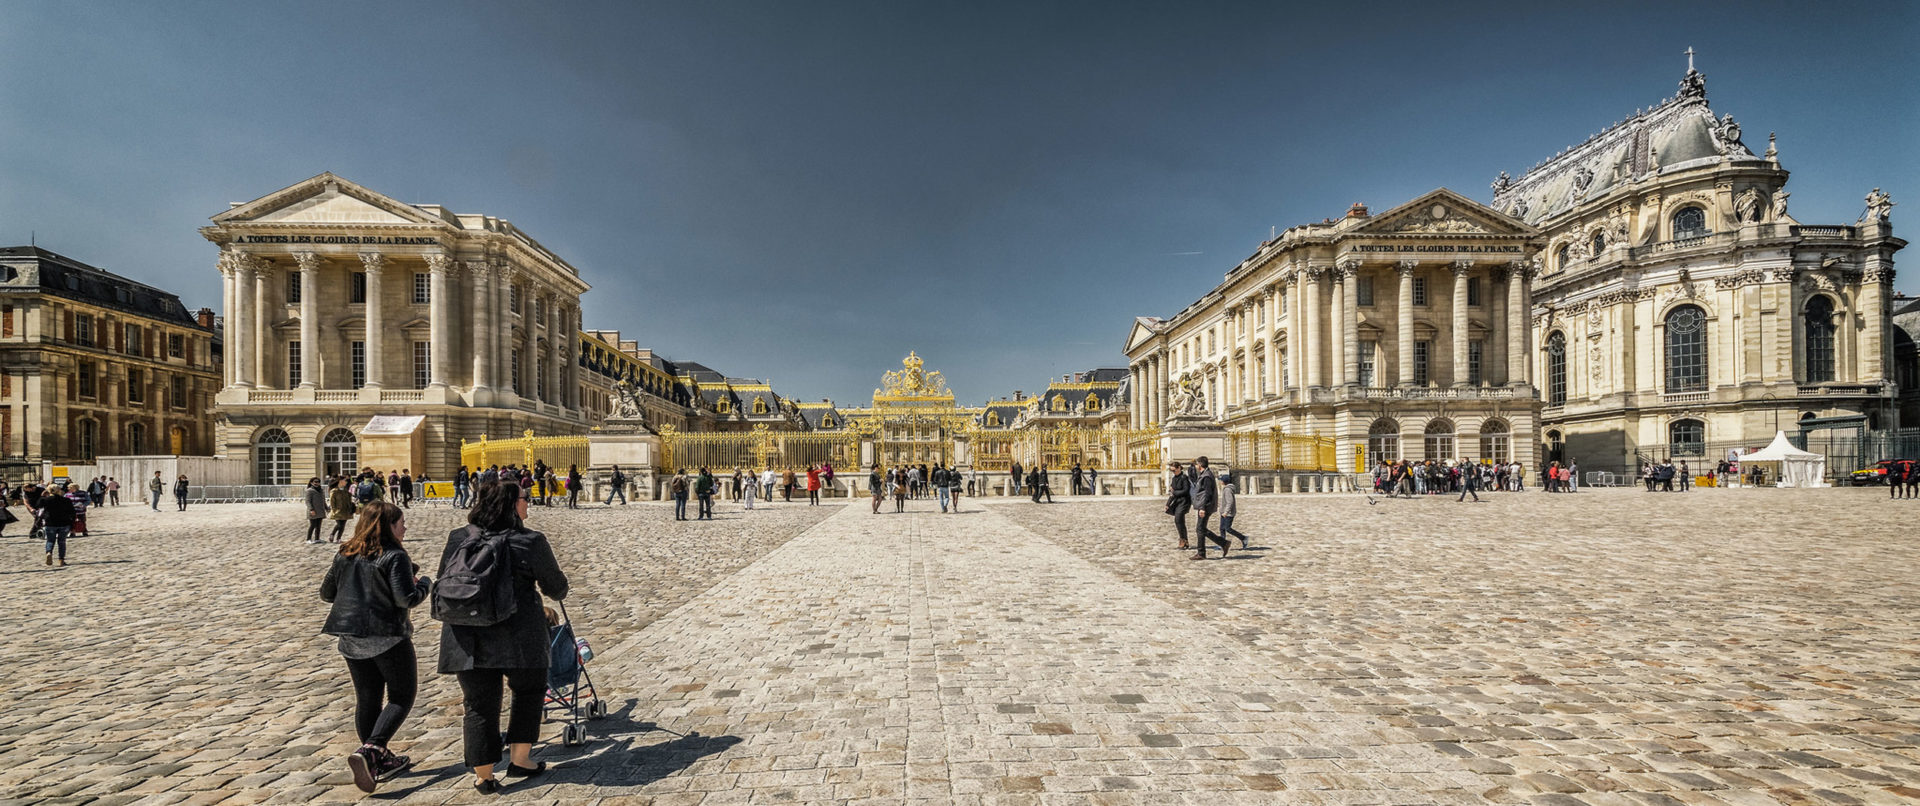 versailles-teens-tour-fast-track-experience1